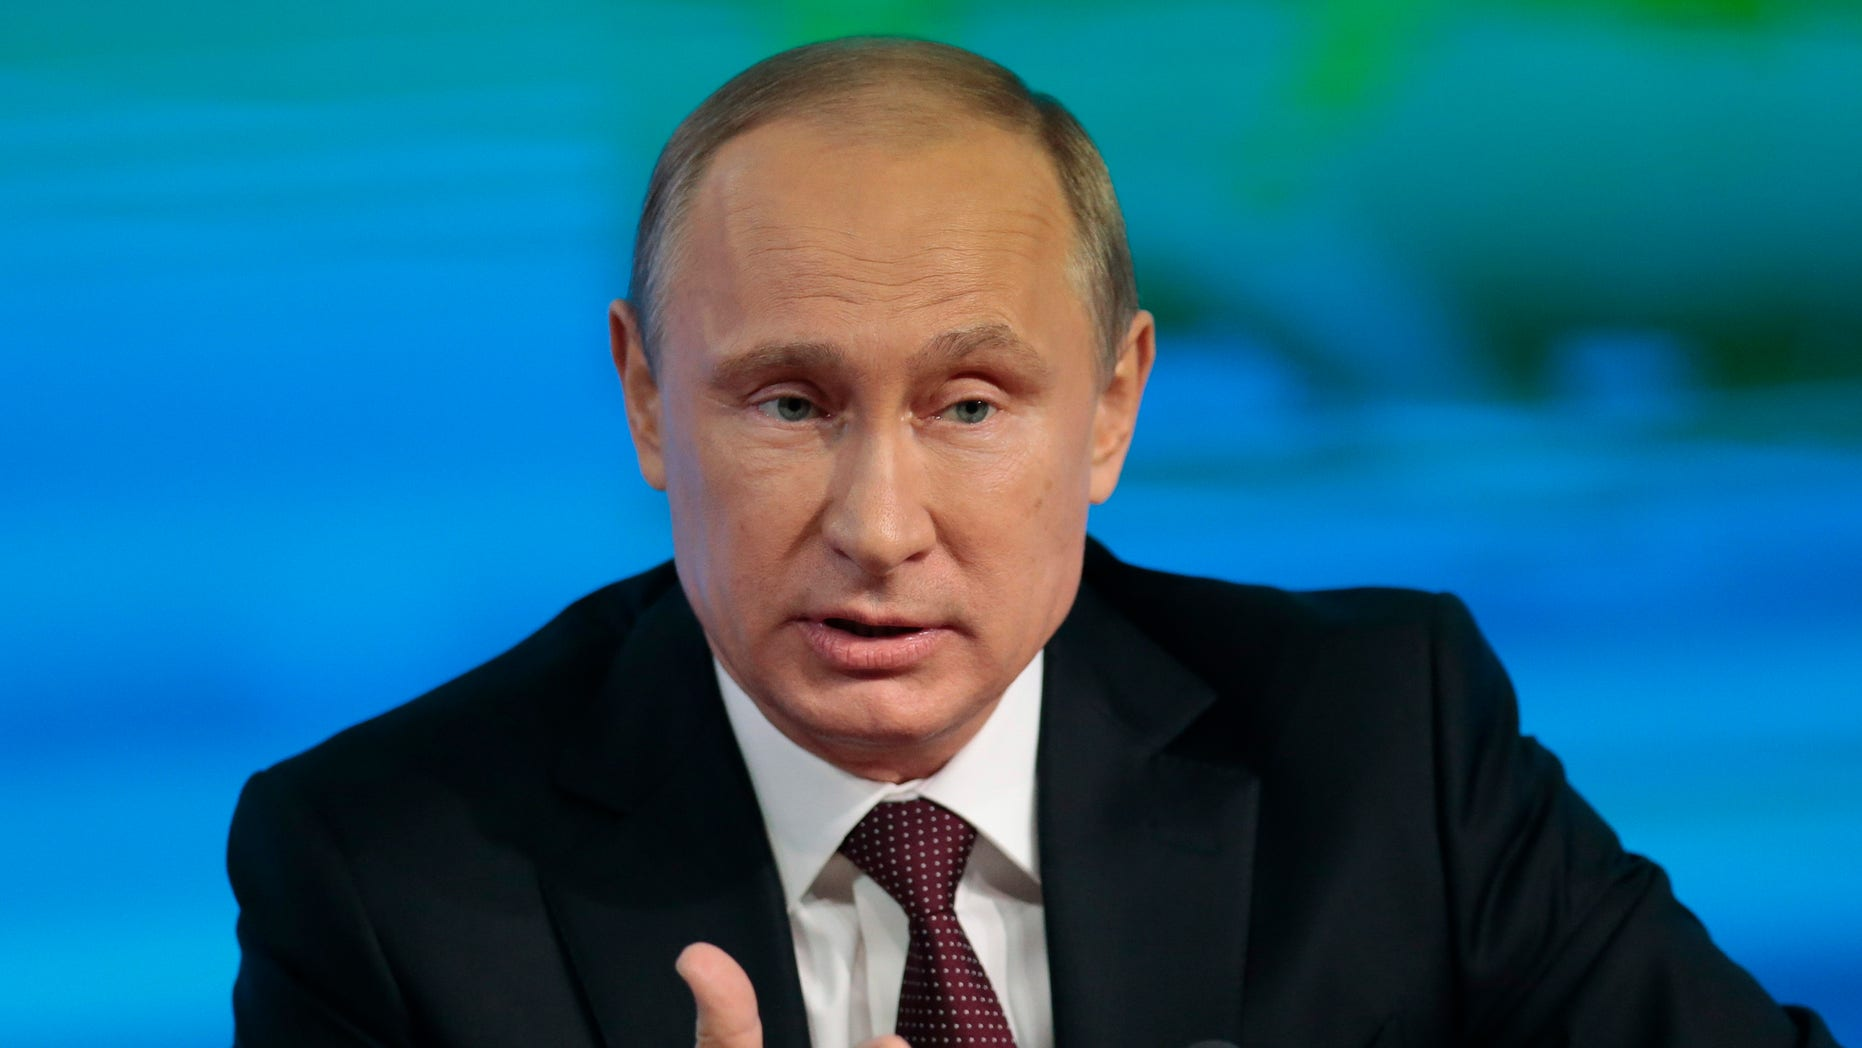 Russian President Vladimir Putin speaks at his annual news conference in Moscow, Russia, Thursday, Dec. 19, 2013. (AP Photo/Ivan Sekretarev)